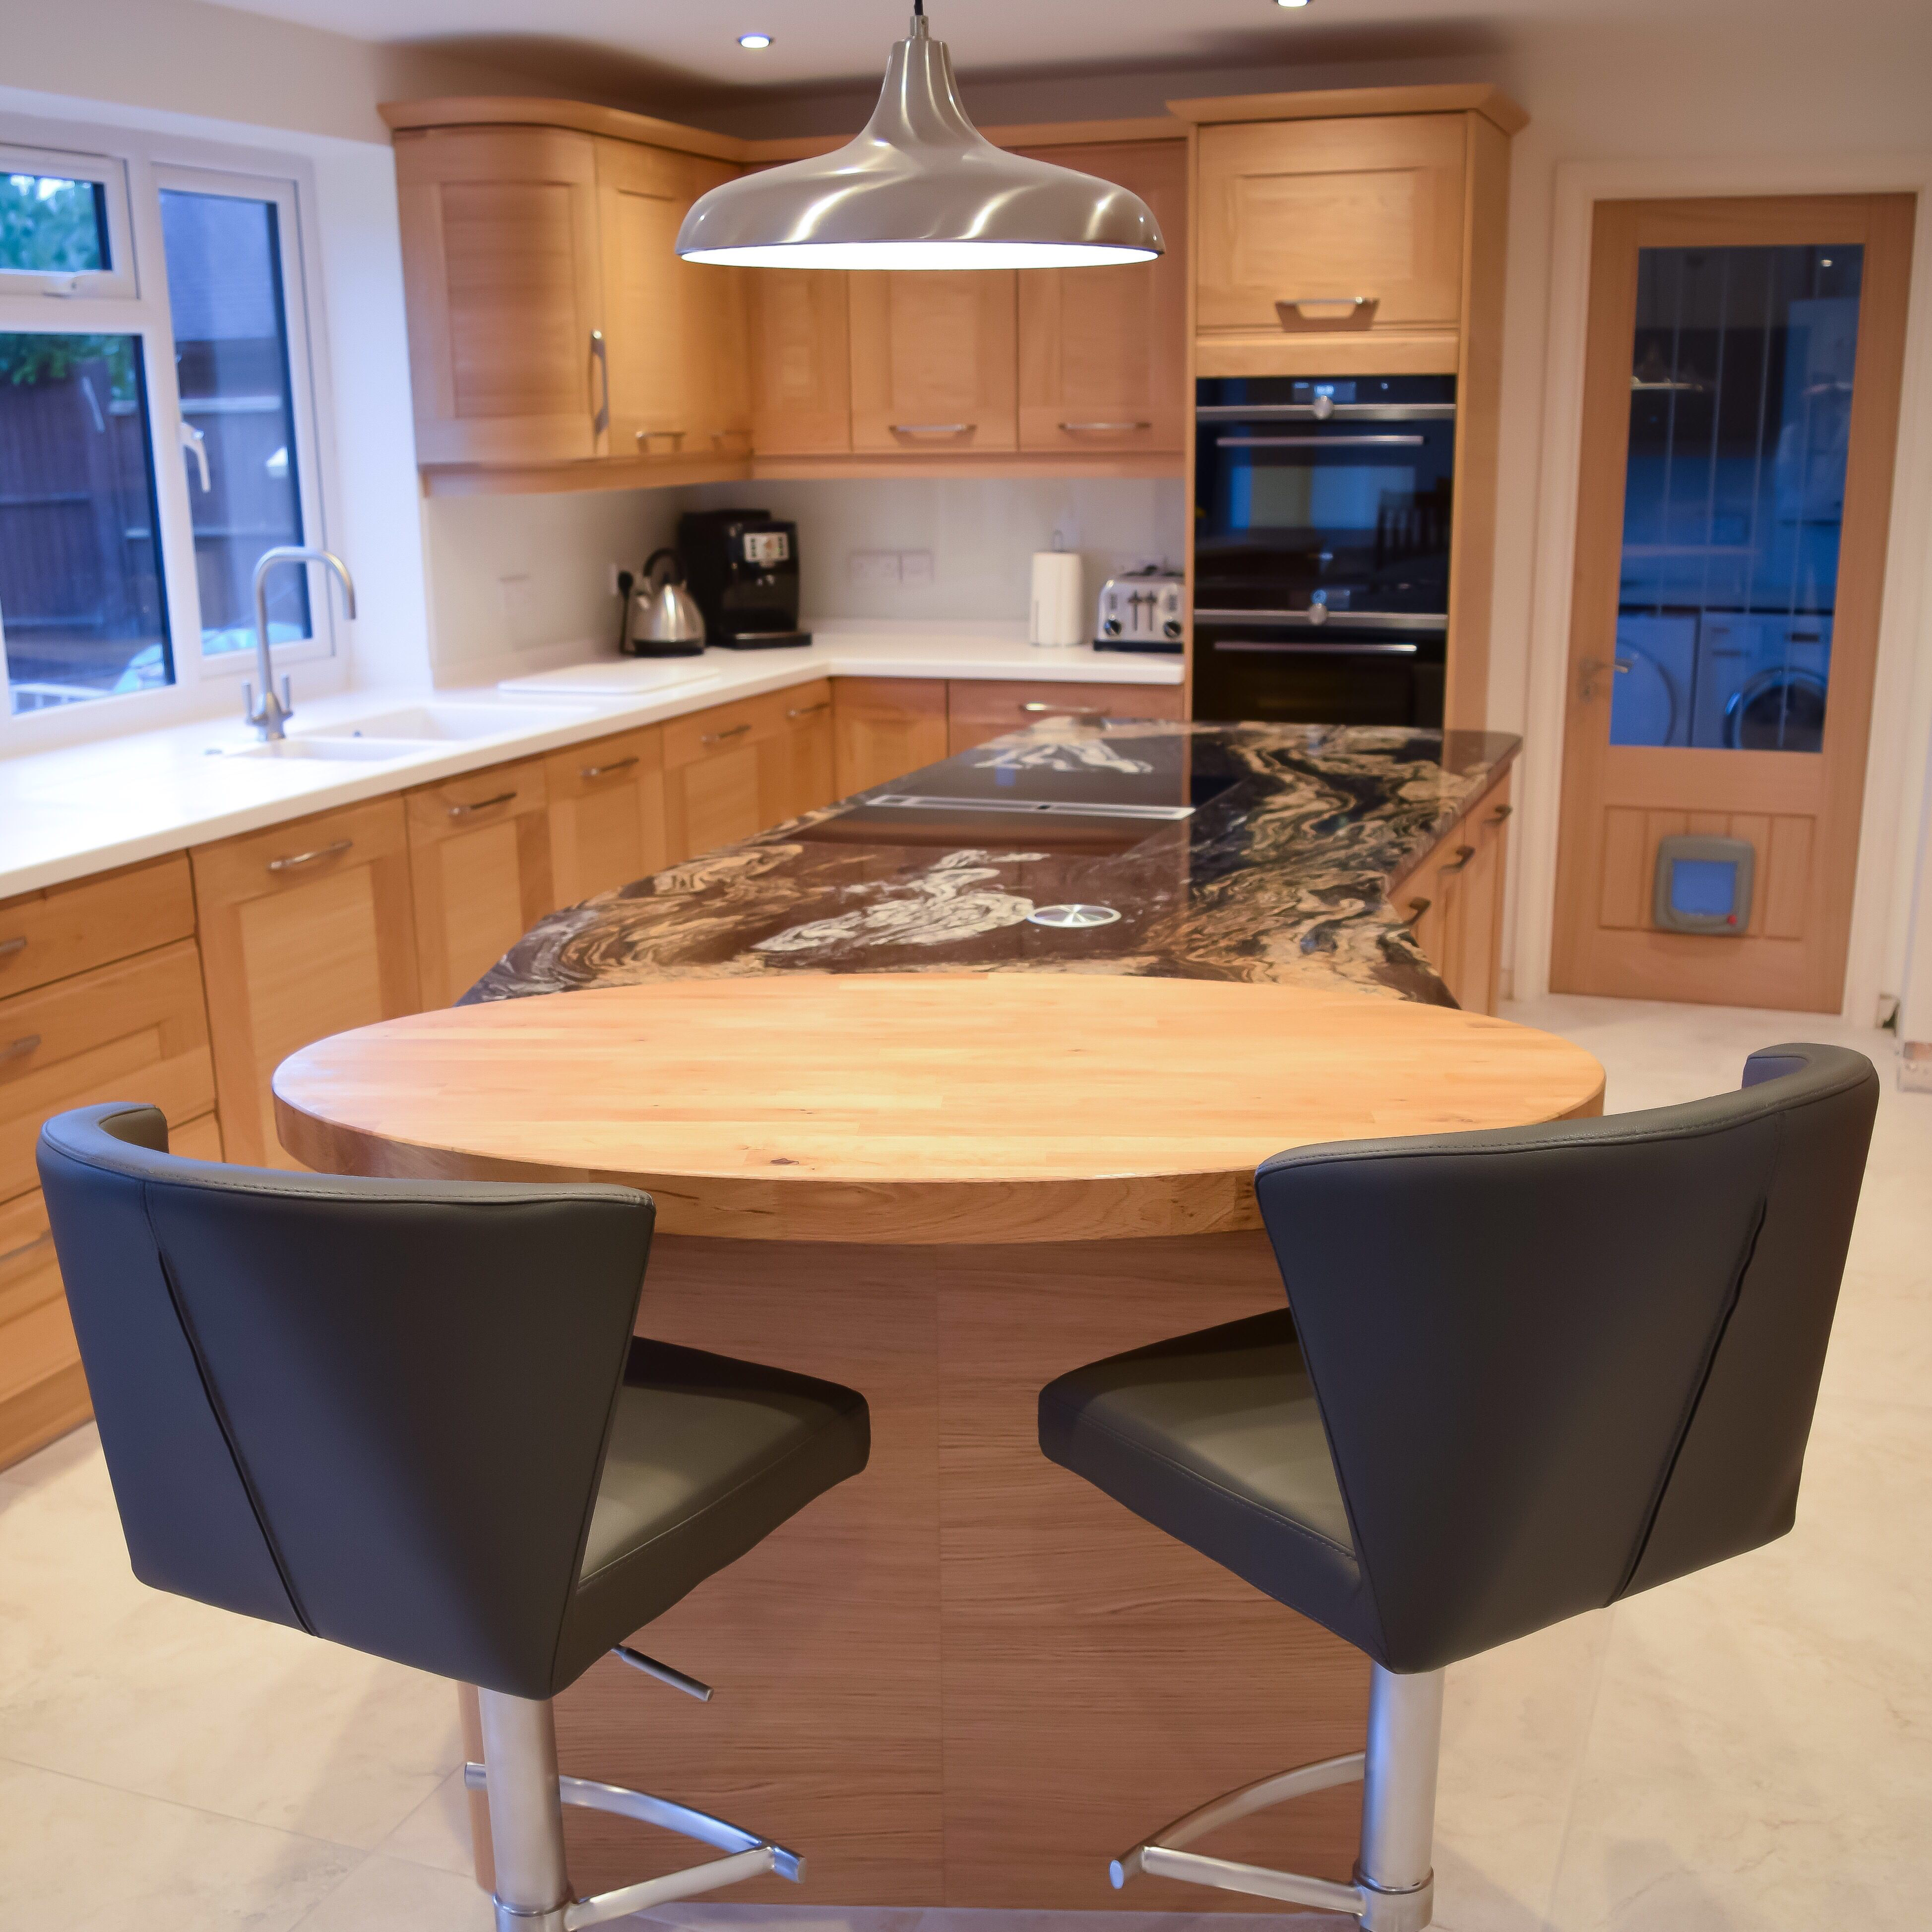 Bespoke Kitchen, Hedge End